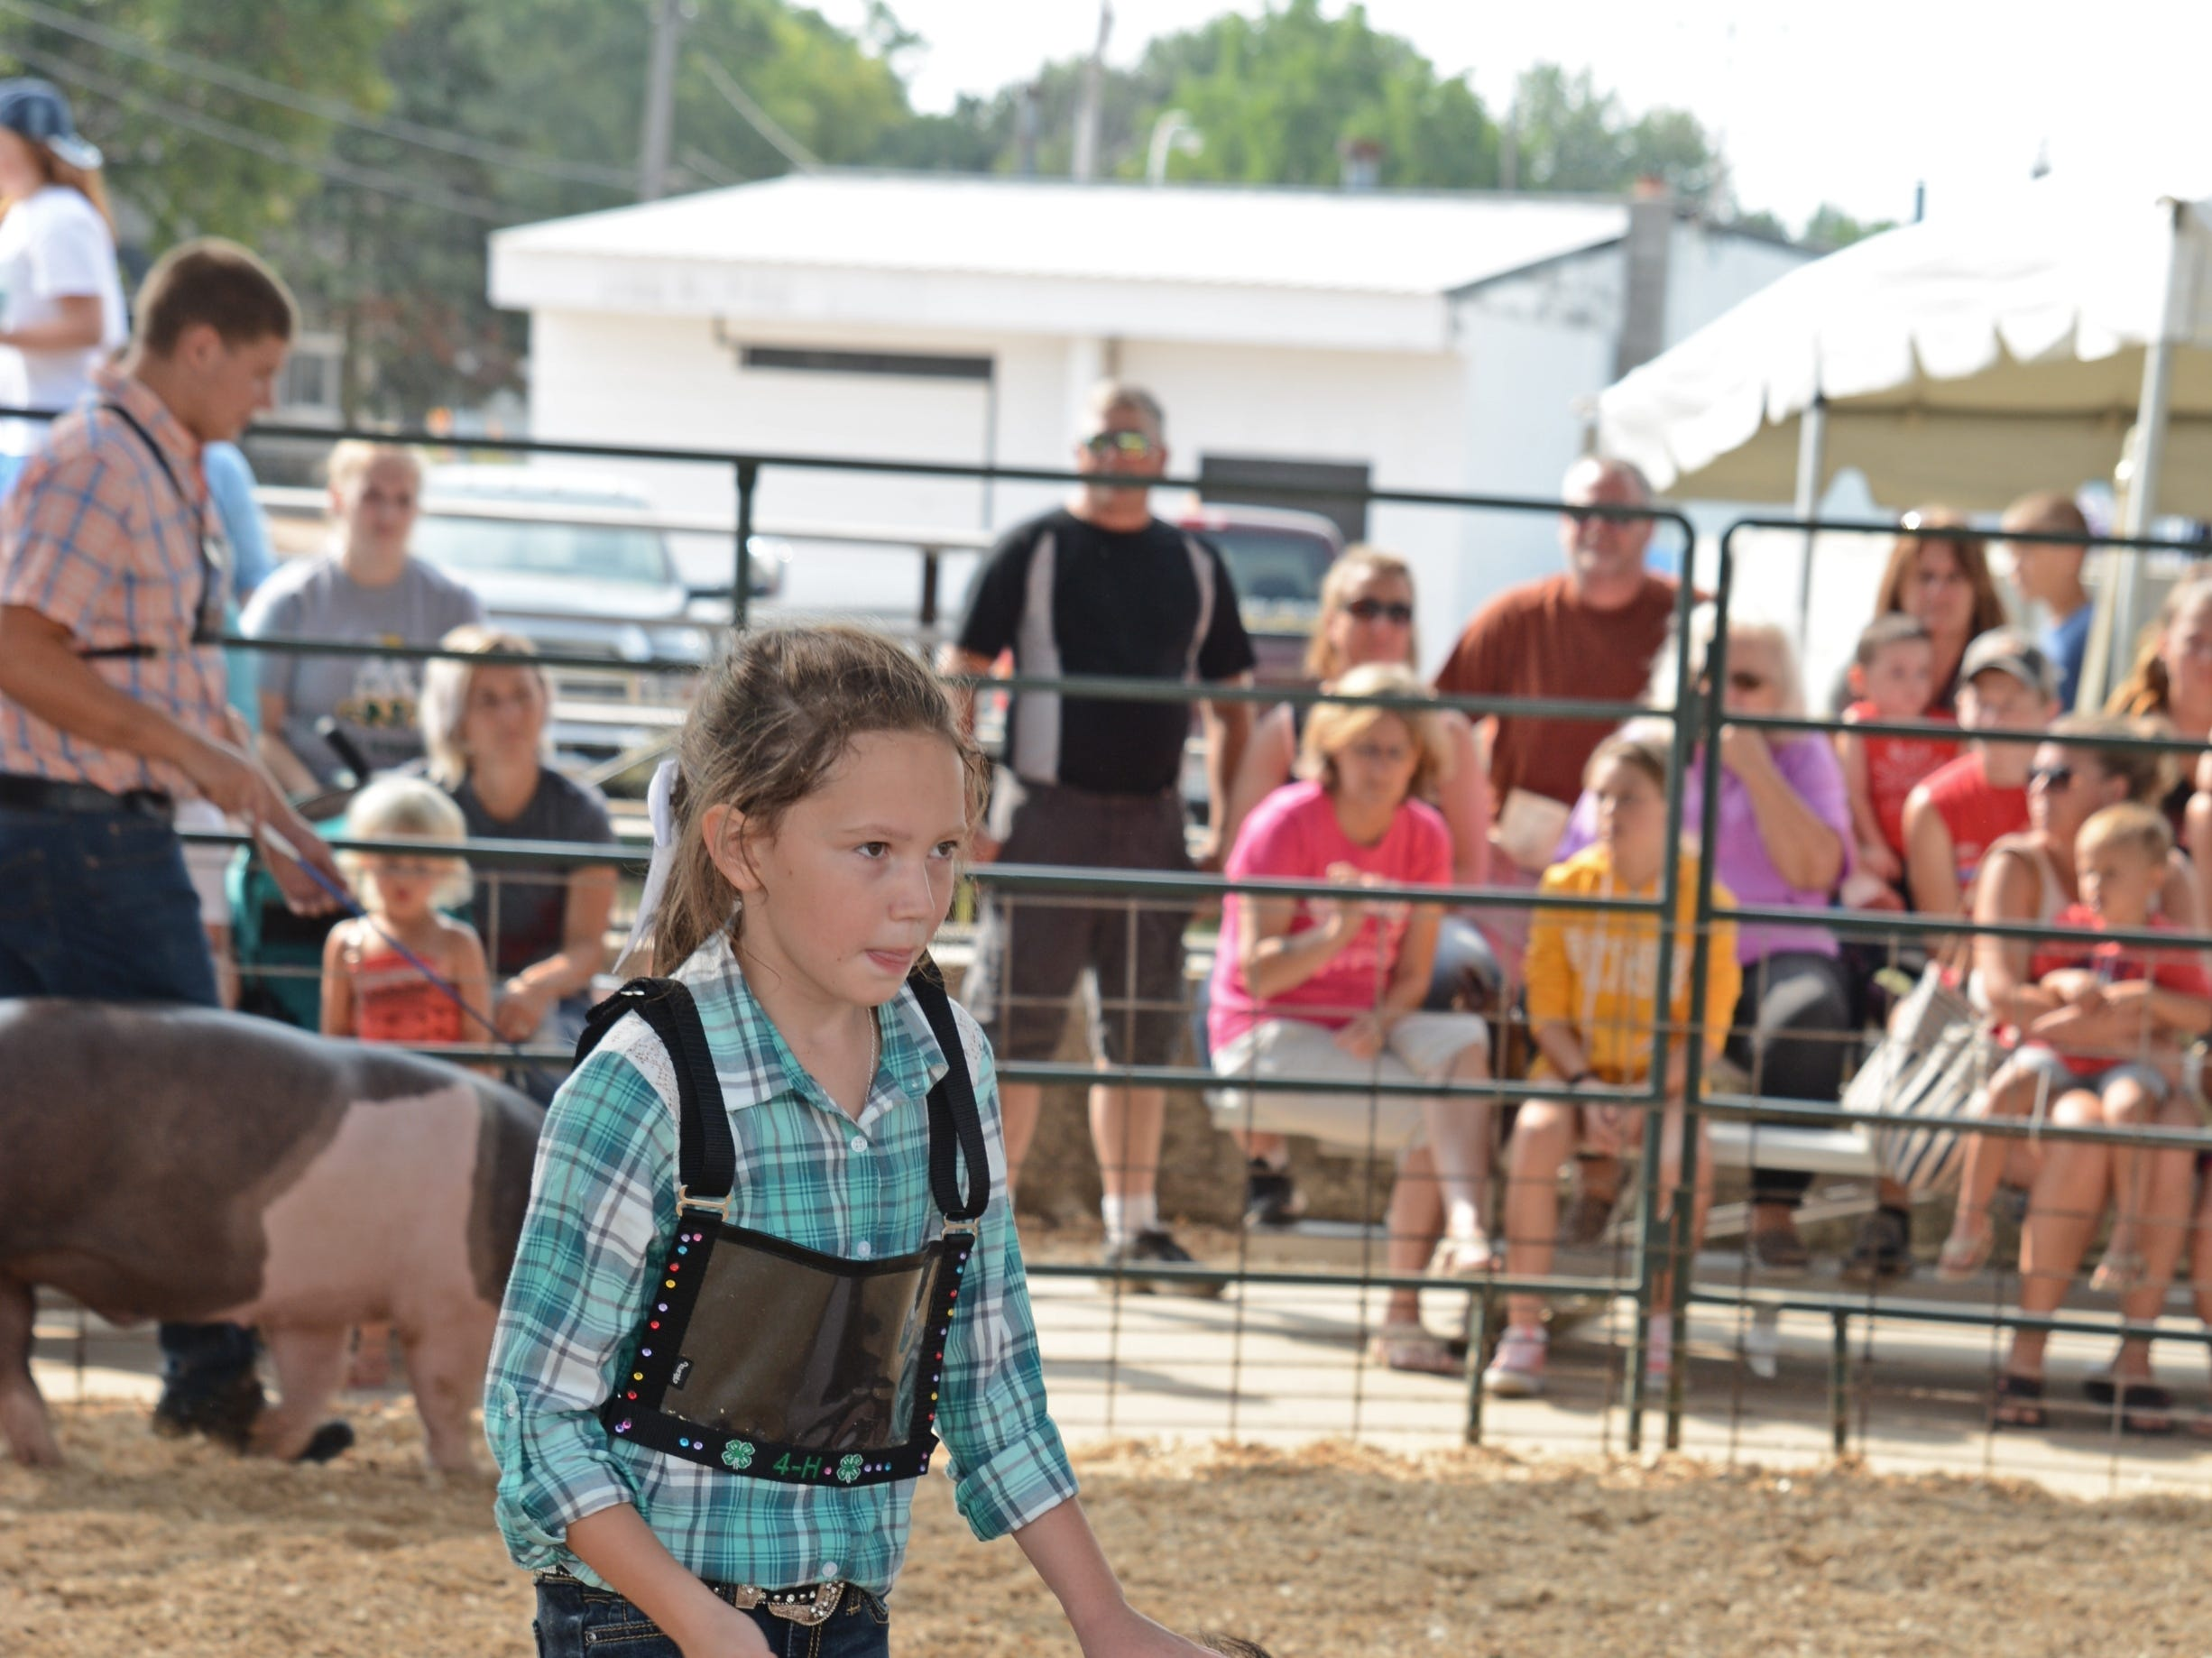 Caylee Bjelland, 9, of Christy Brook 4H Club  shows her pig at the Swine Show at the Oconto County Fair on Friday, Aug. 17. She won the Swine Medium Weight Class  and Reserve Champion.